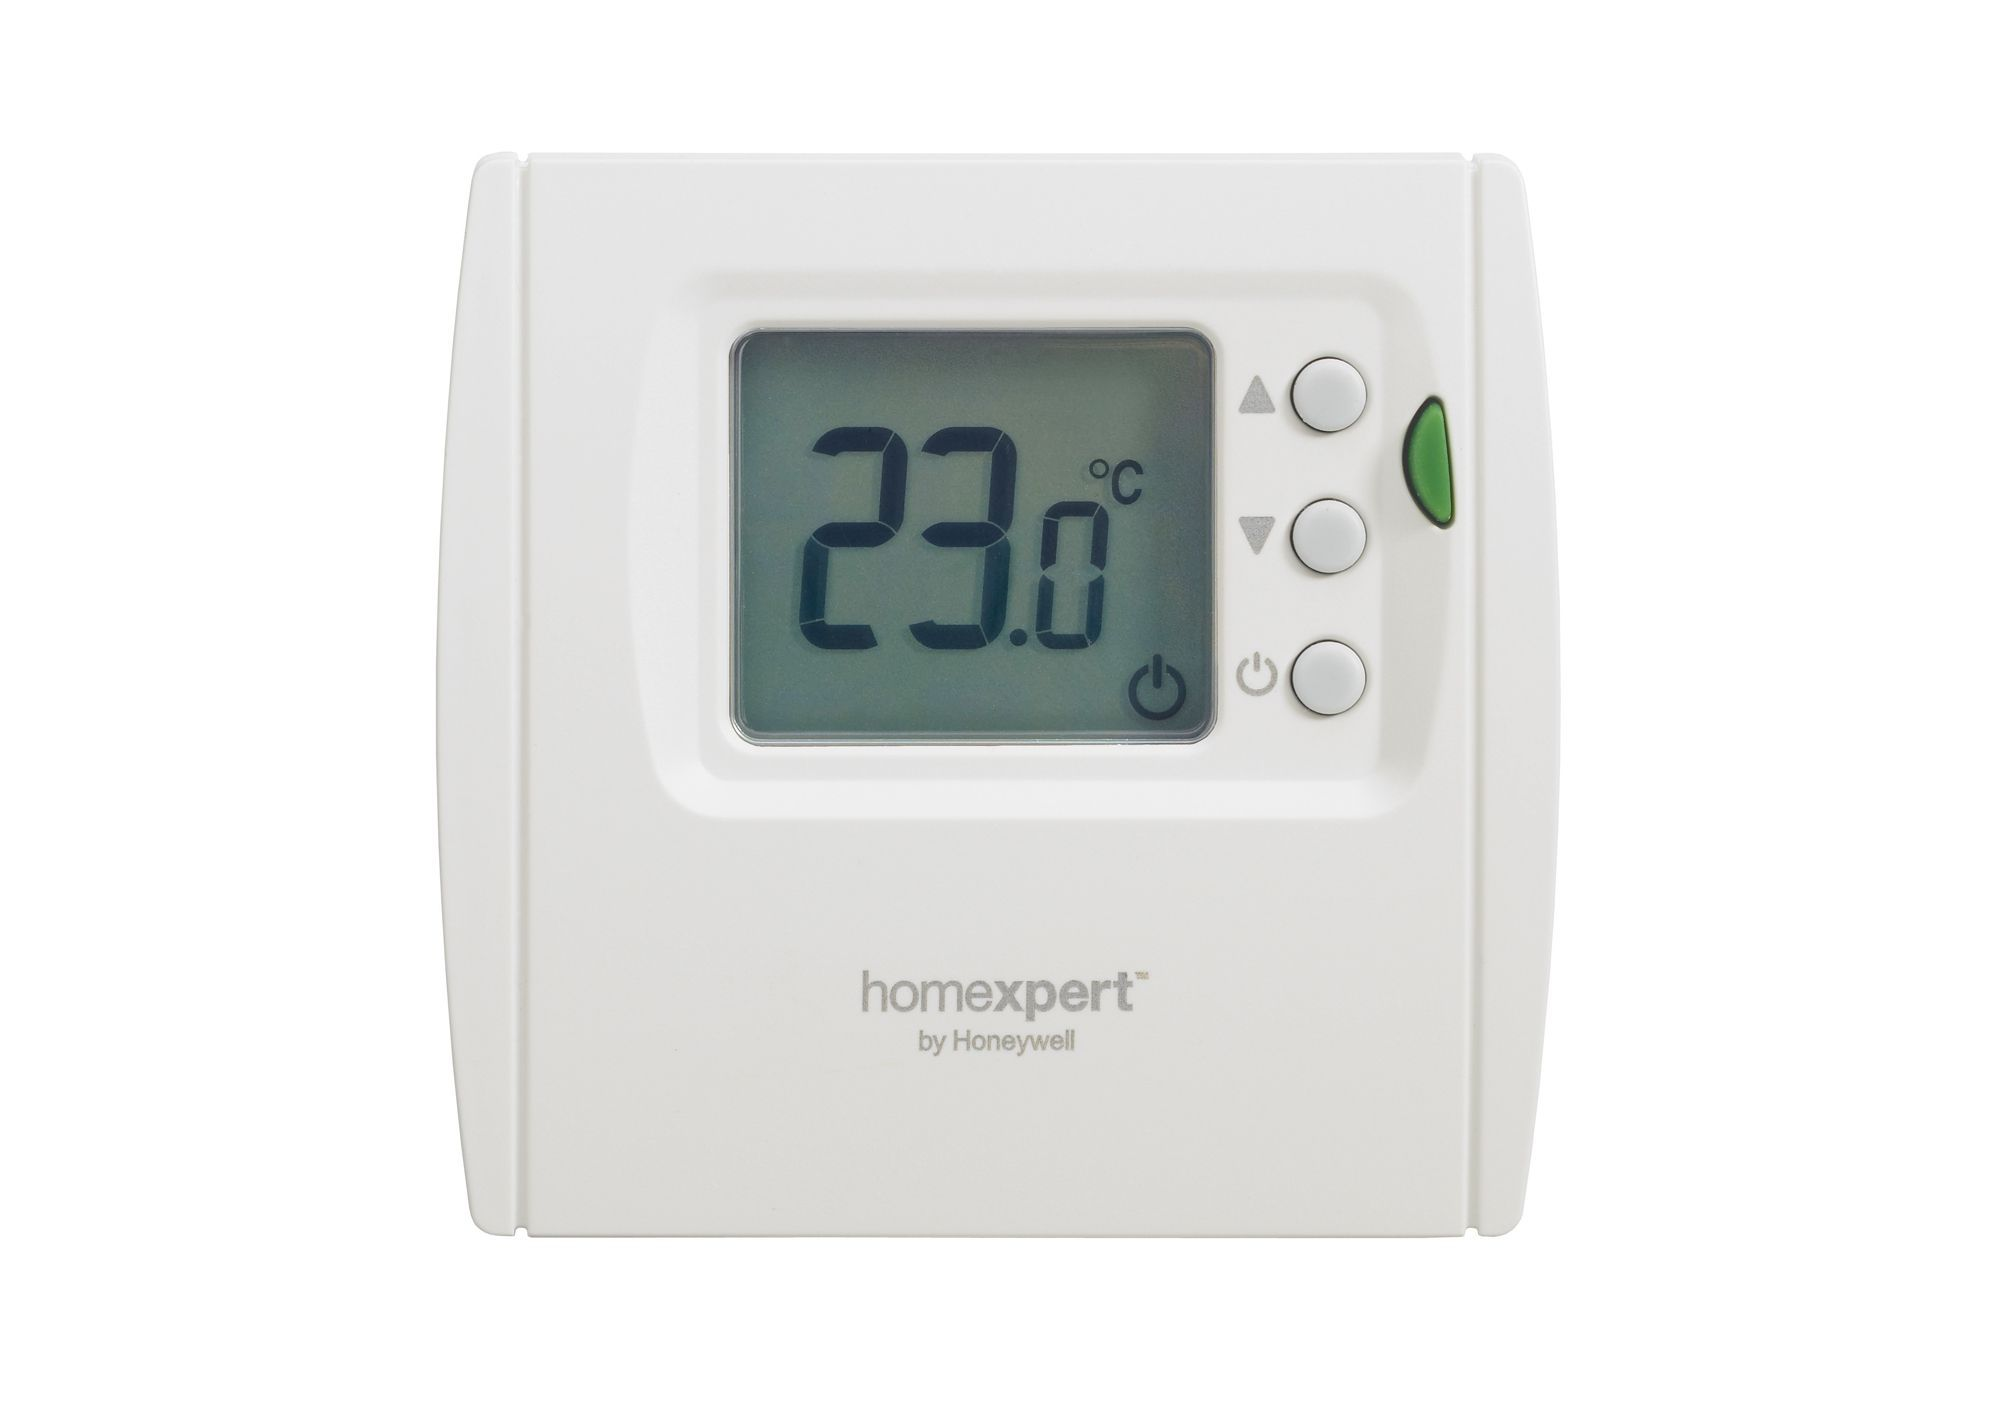 Honeywell Homeexpert Digital Thermostat Departments